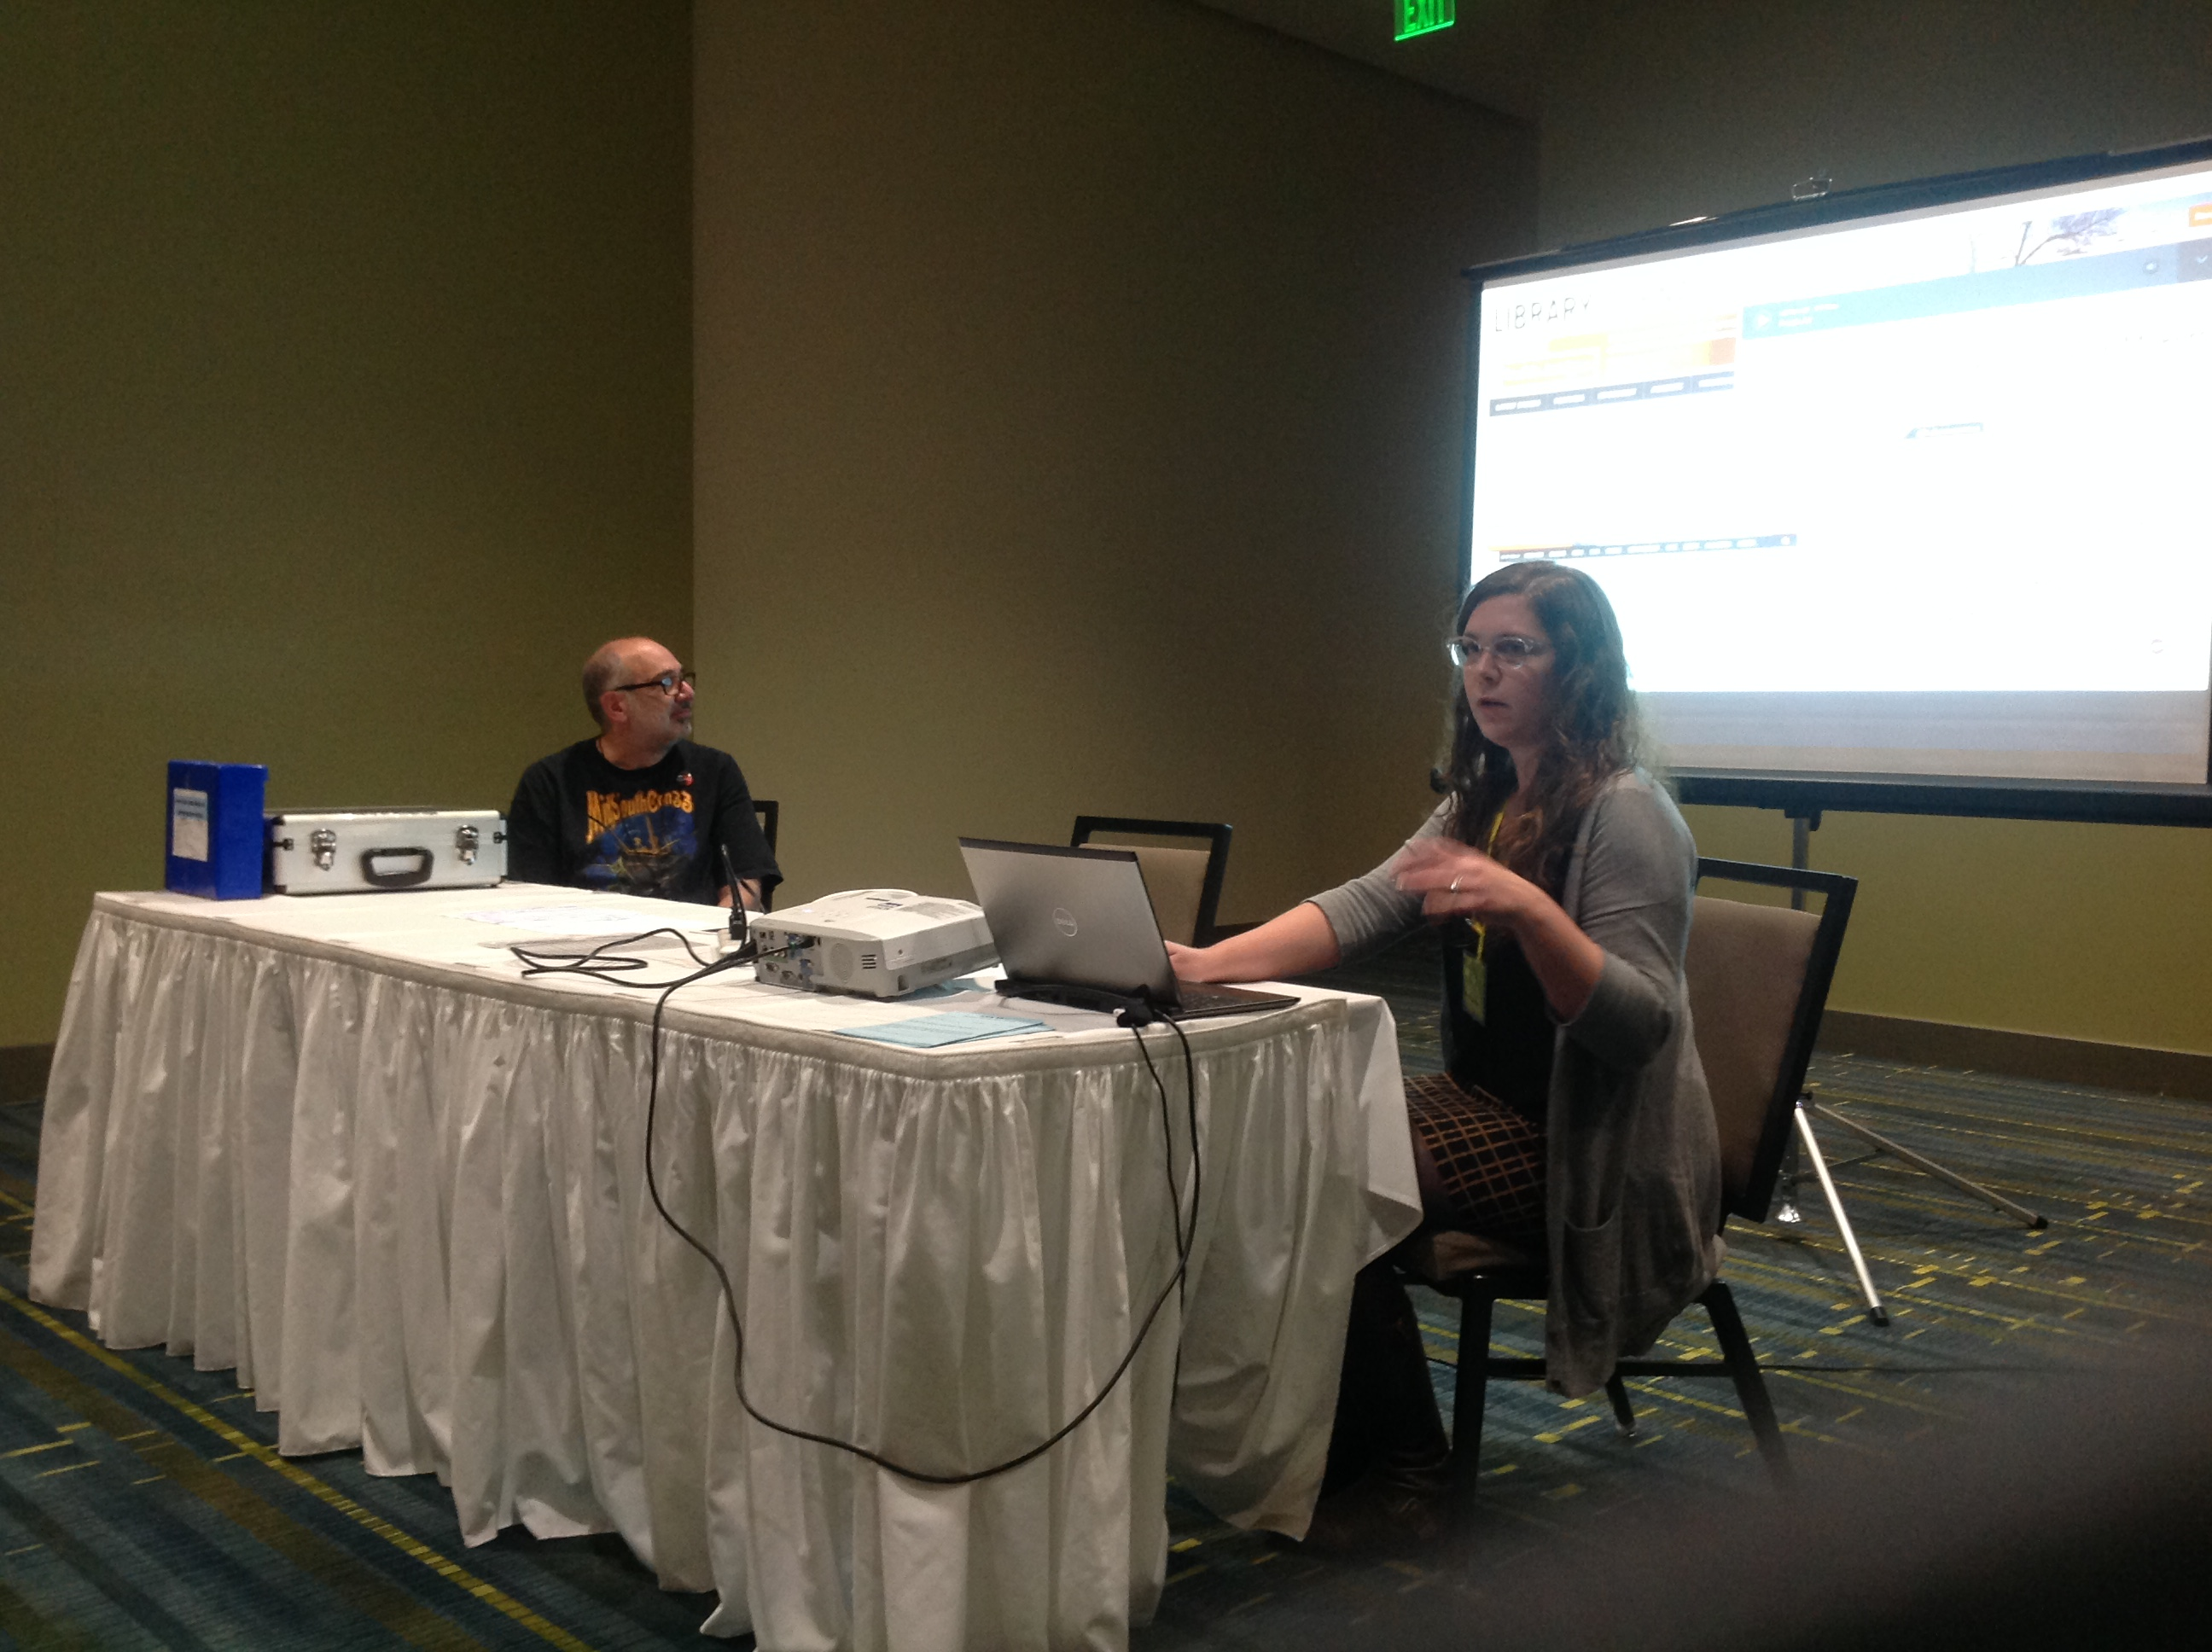 Laura and Pete presenting at a panel